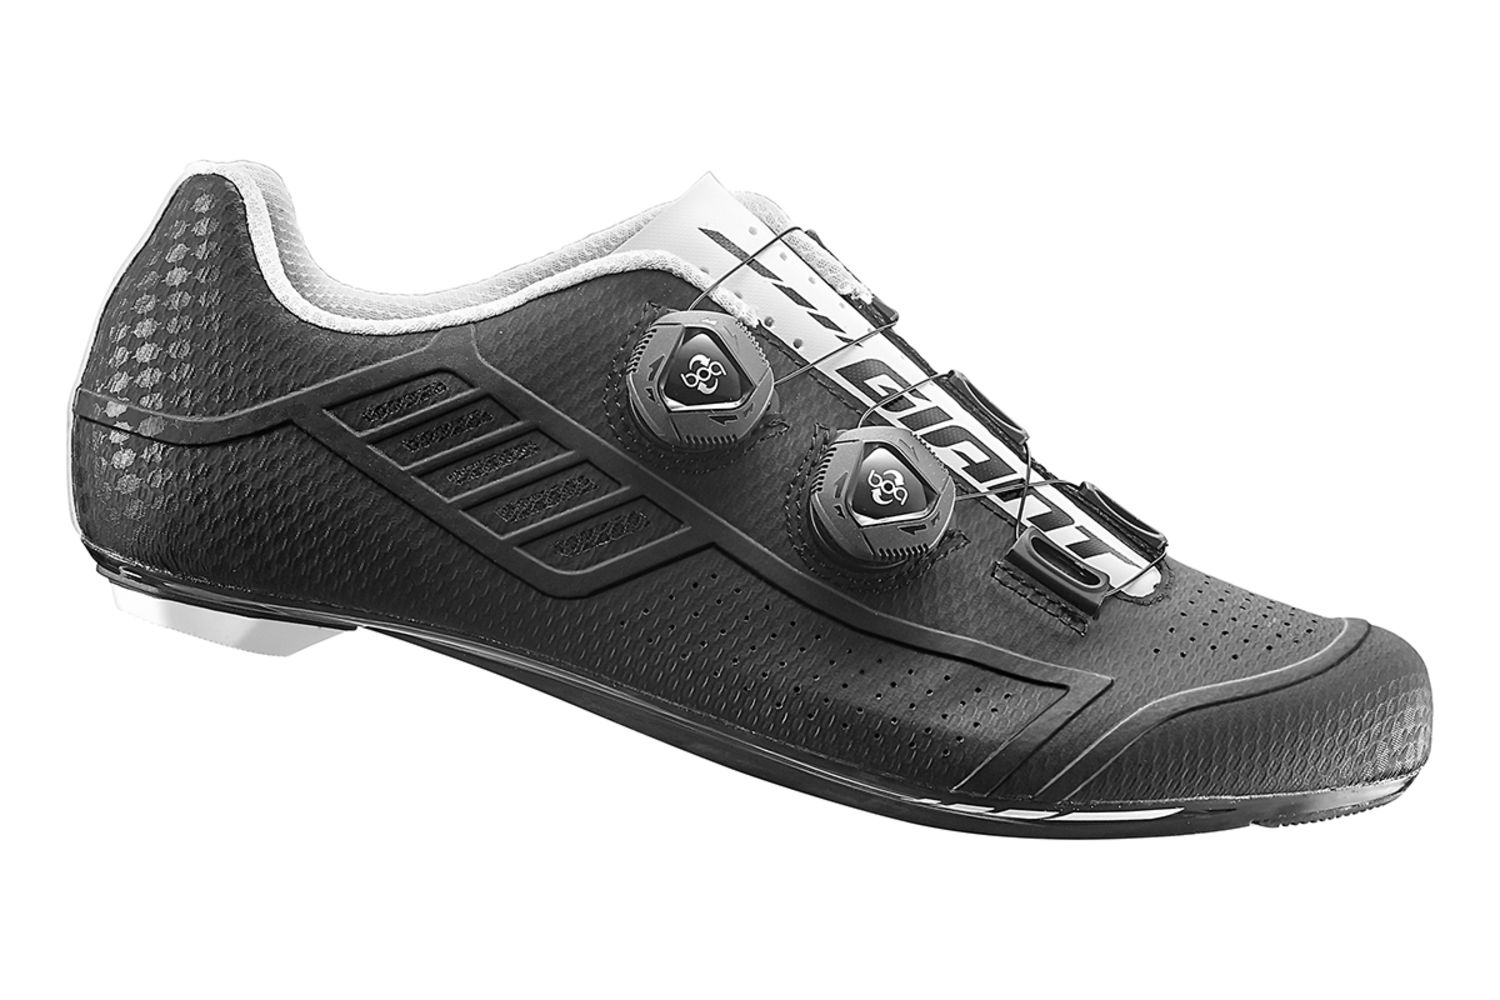 193dcc8e41f 2016 Giant Conduit / Carbon Mens Performance Road Cycling Shoes ...